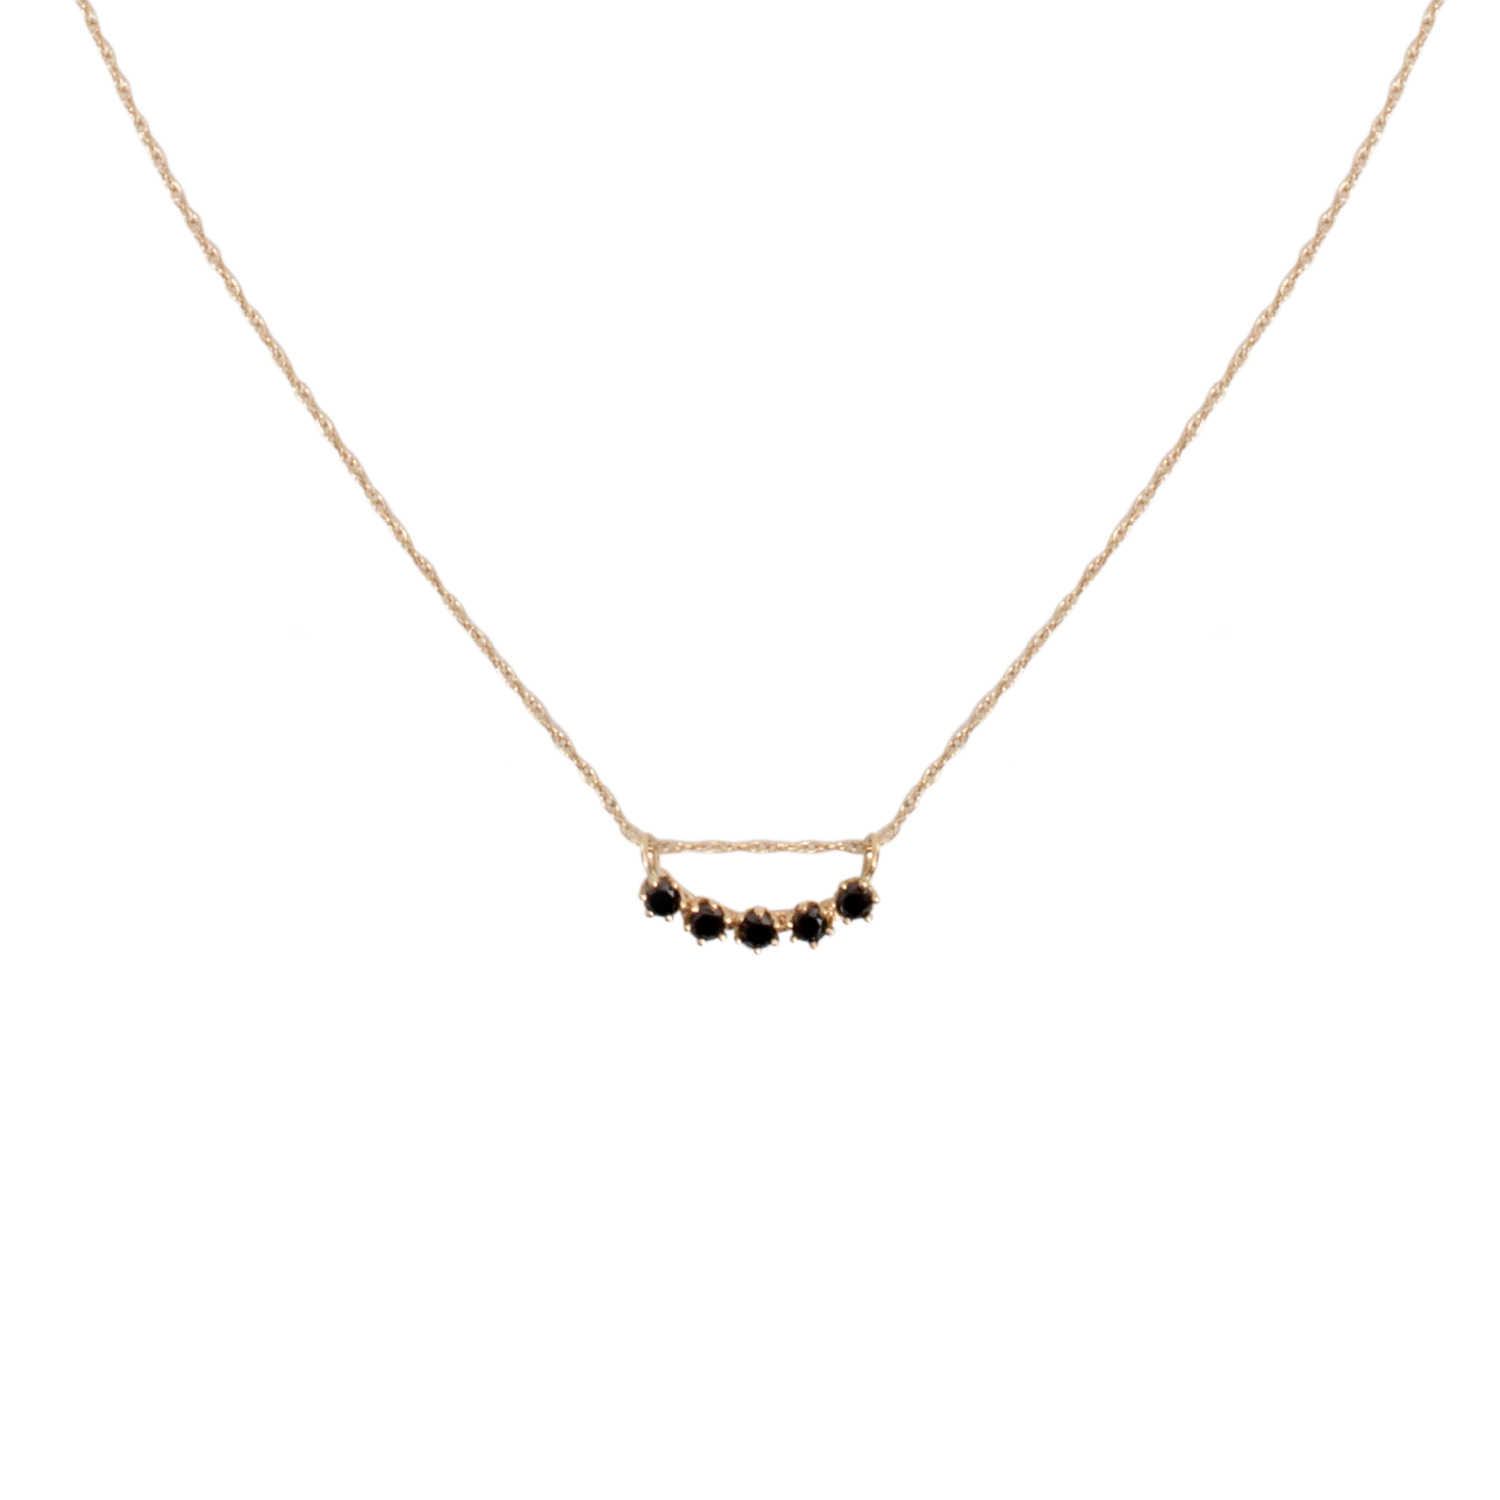 stone necklace round rosegold diamond small closeup and products black s strand pendant